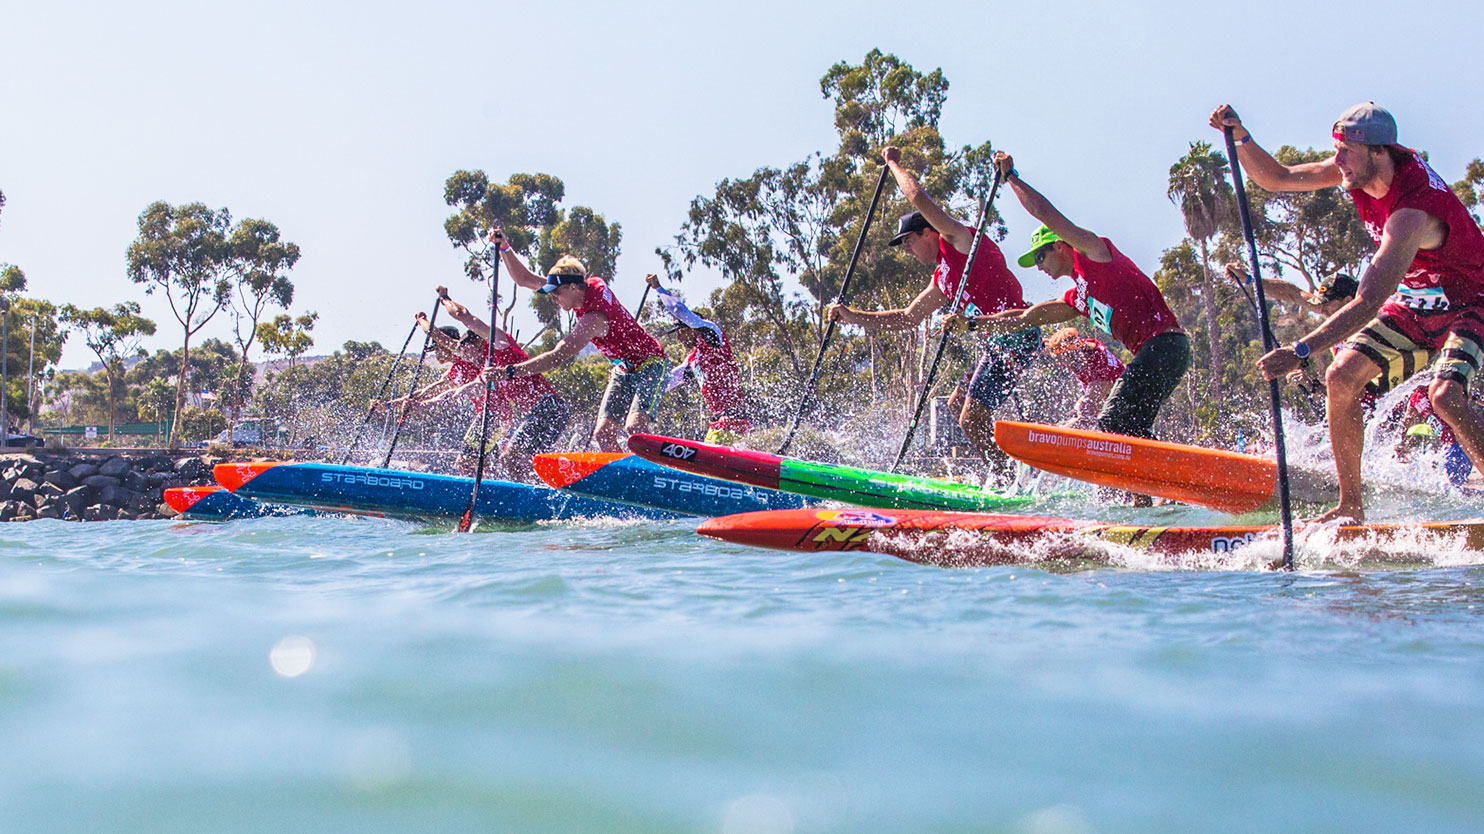 stand up paddle boards racing